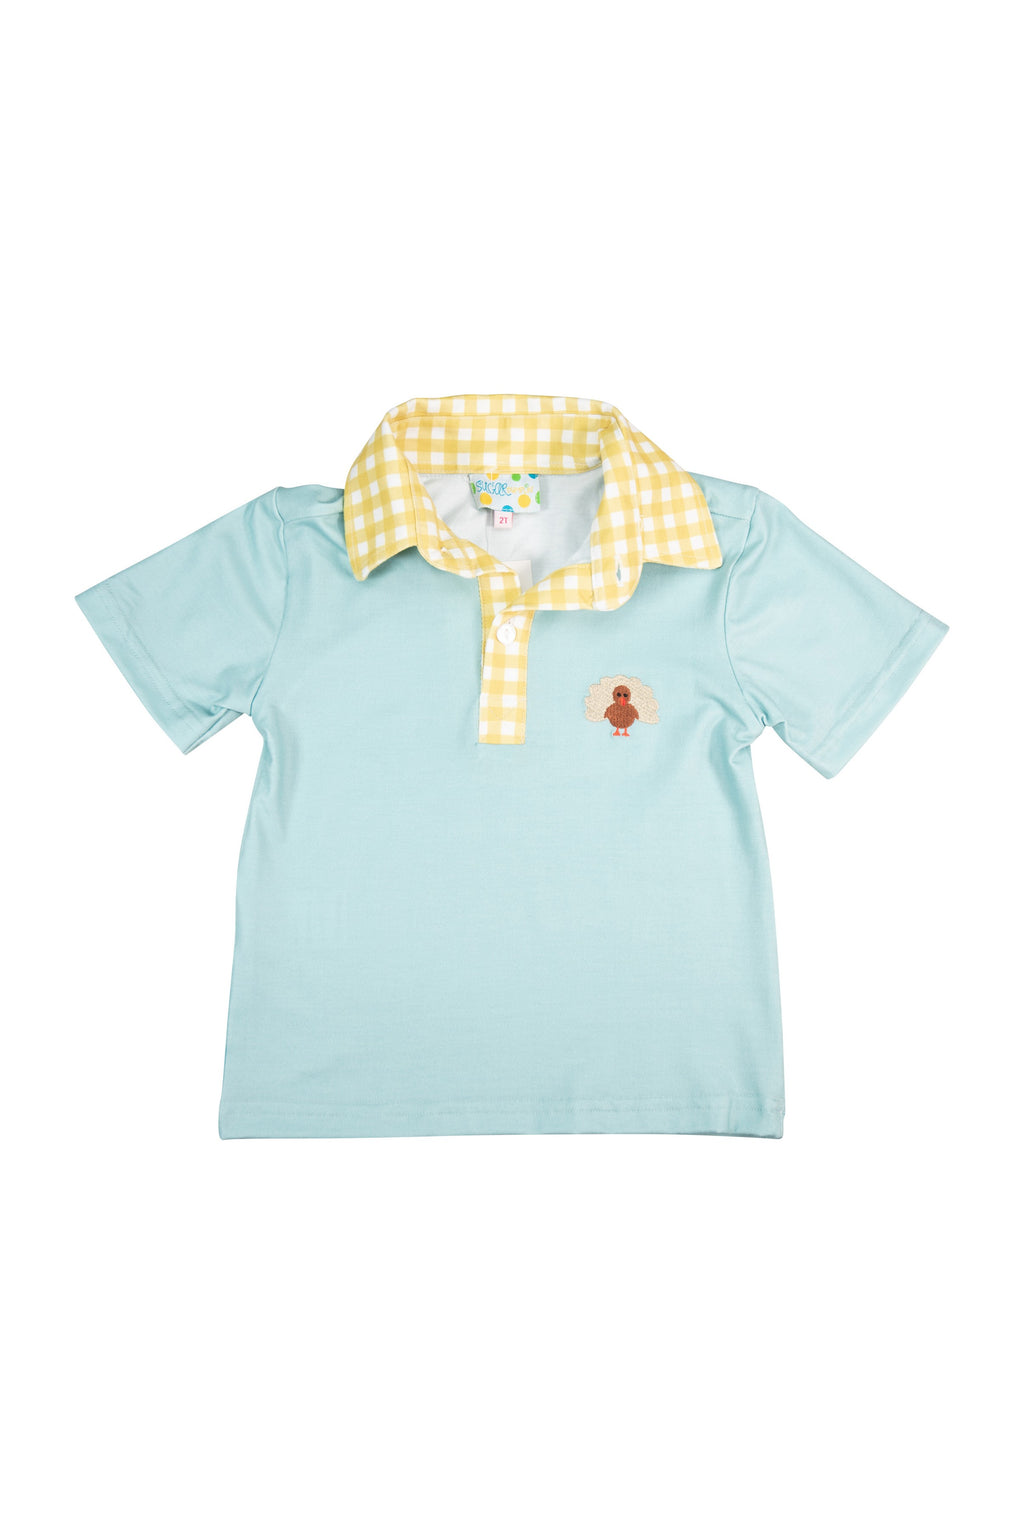 Boys Embroidered Turkey Shirt Only